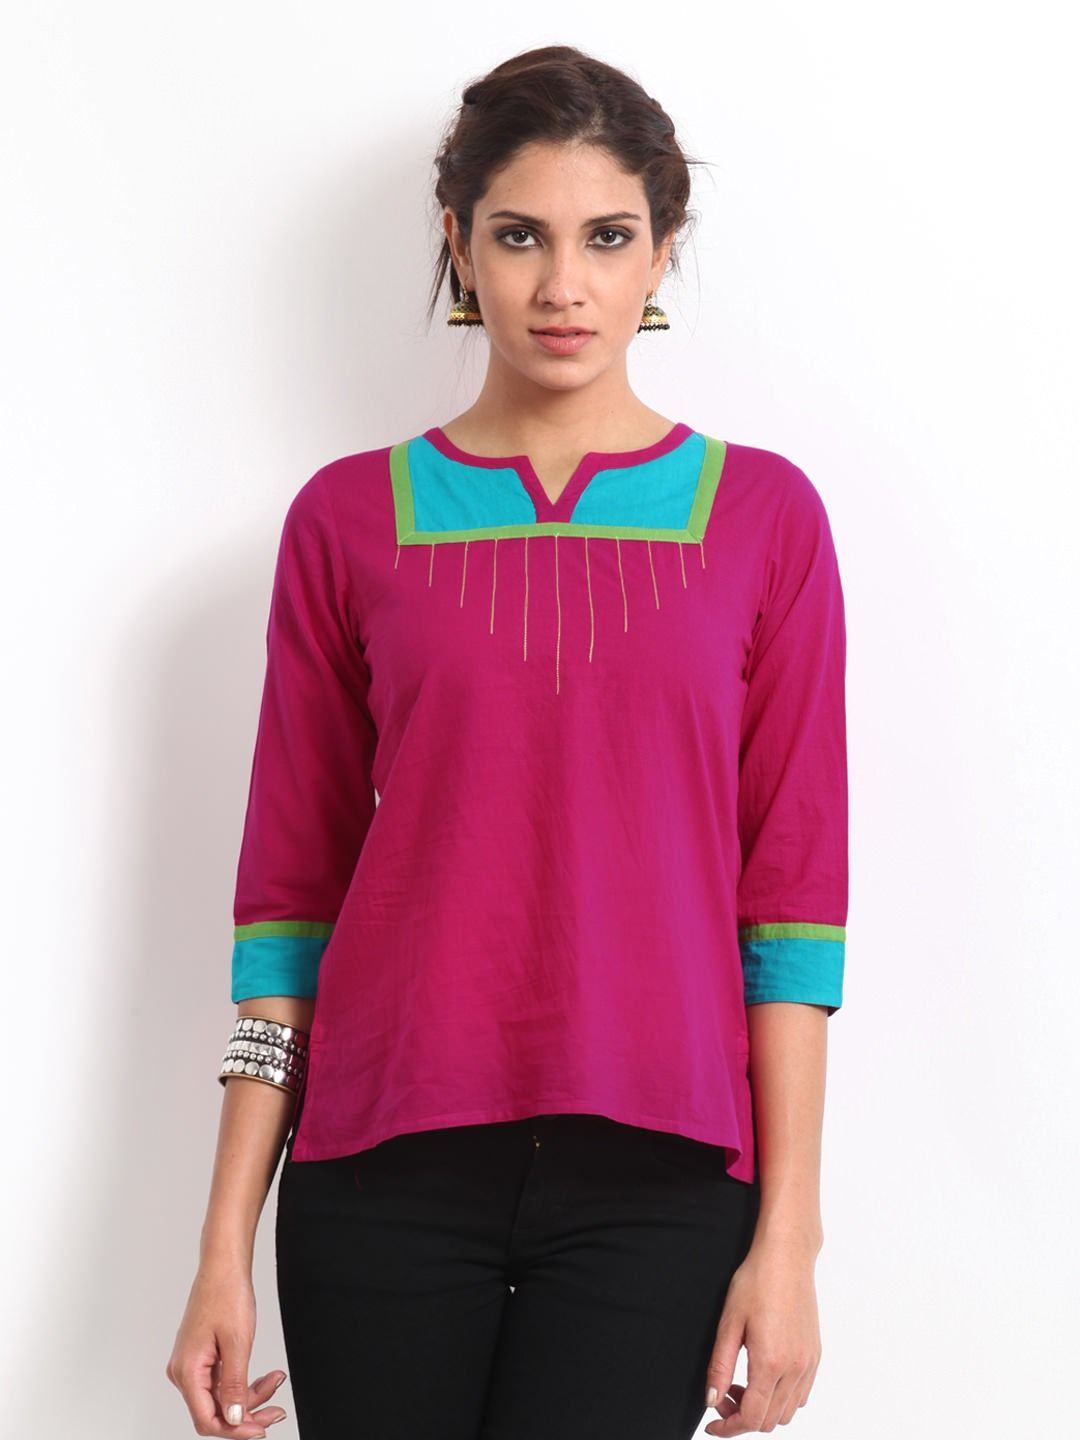 f4ca8020a97 Exclusive Shirts,Tops and tunics For Women By Top Brands | I LoVe ...